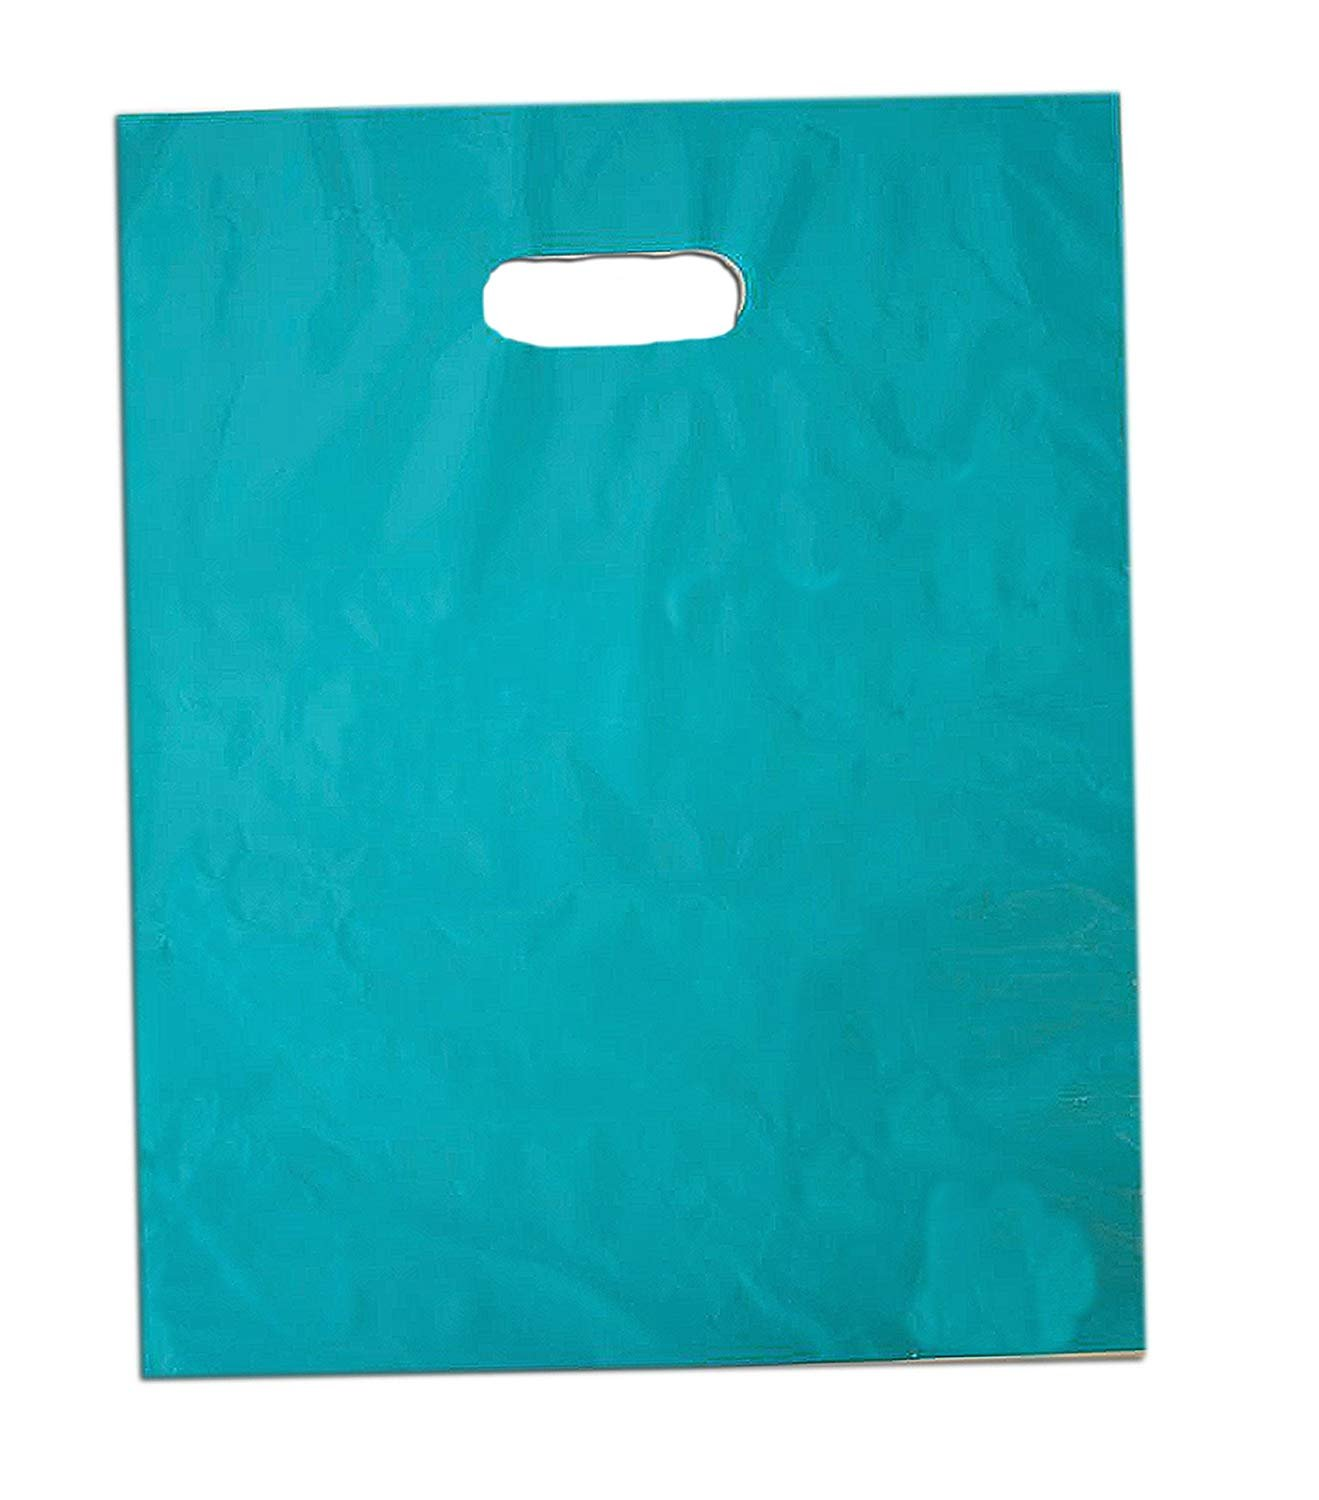 100 12x15 Glossy Teal Blue Plastic Merchandise Bags with Handles